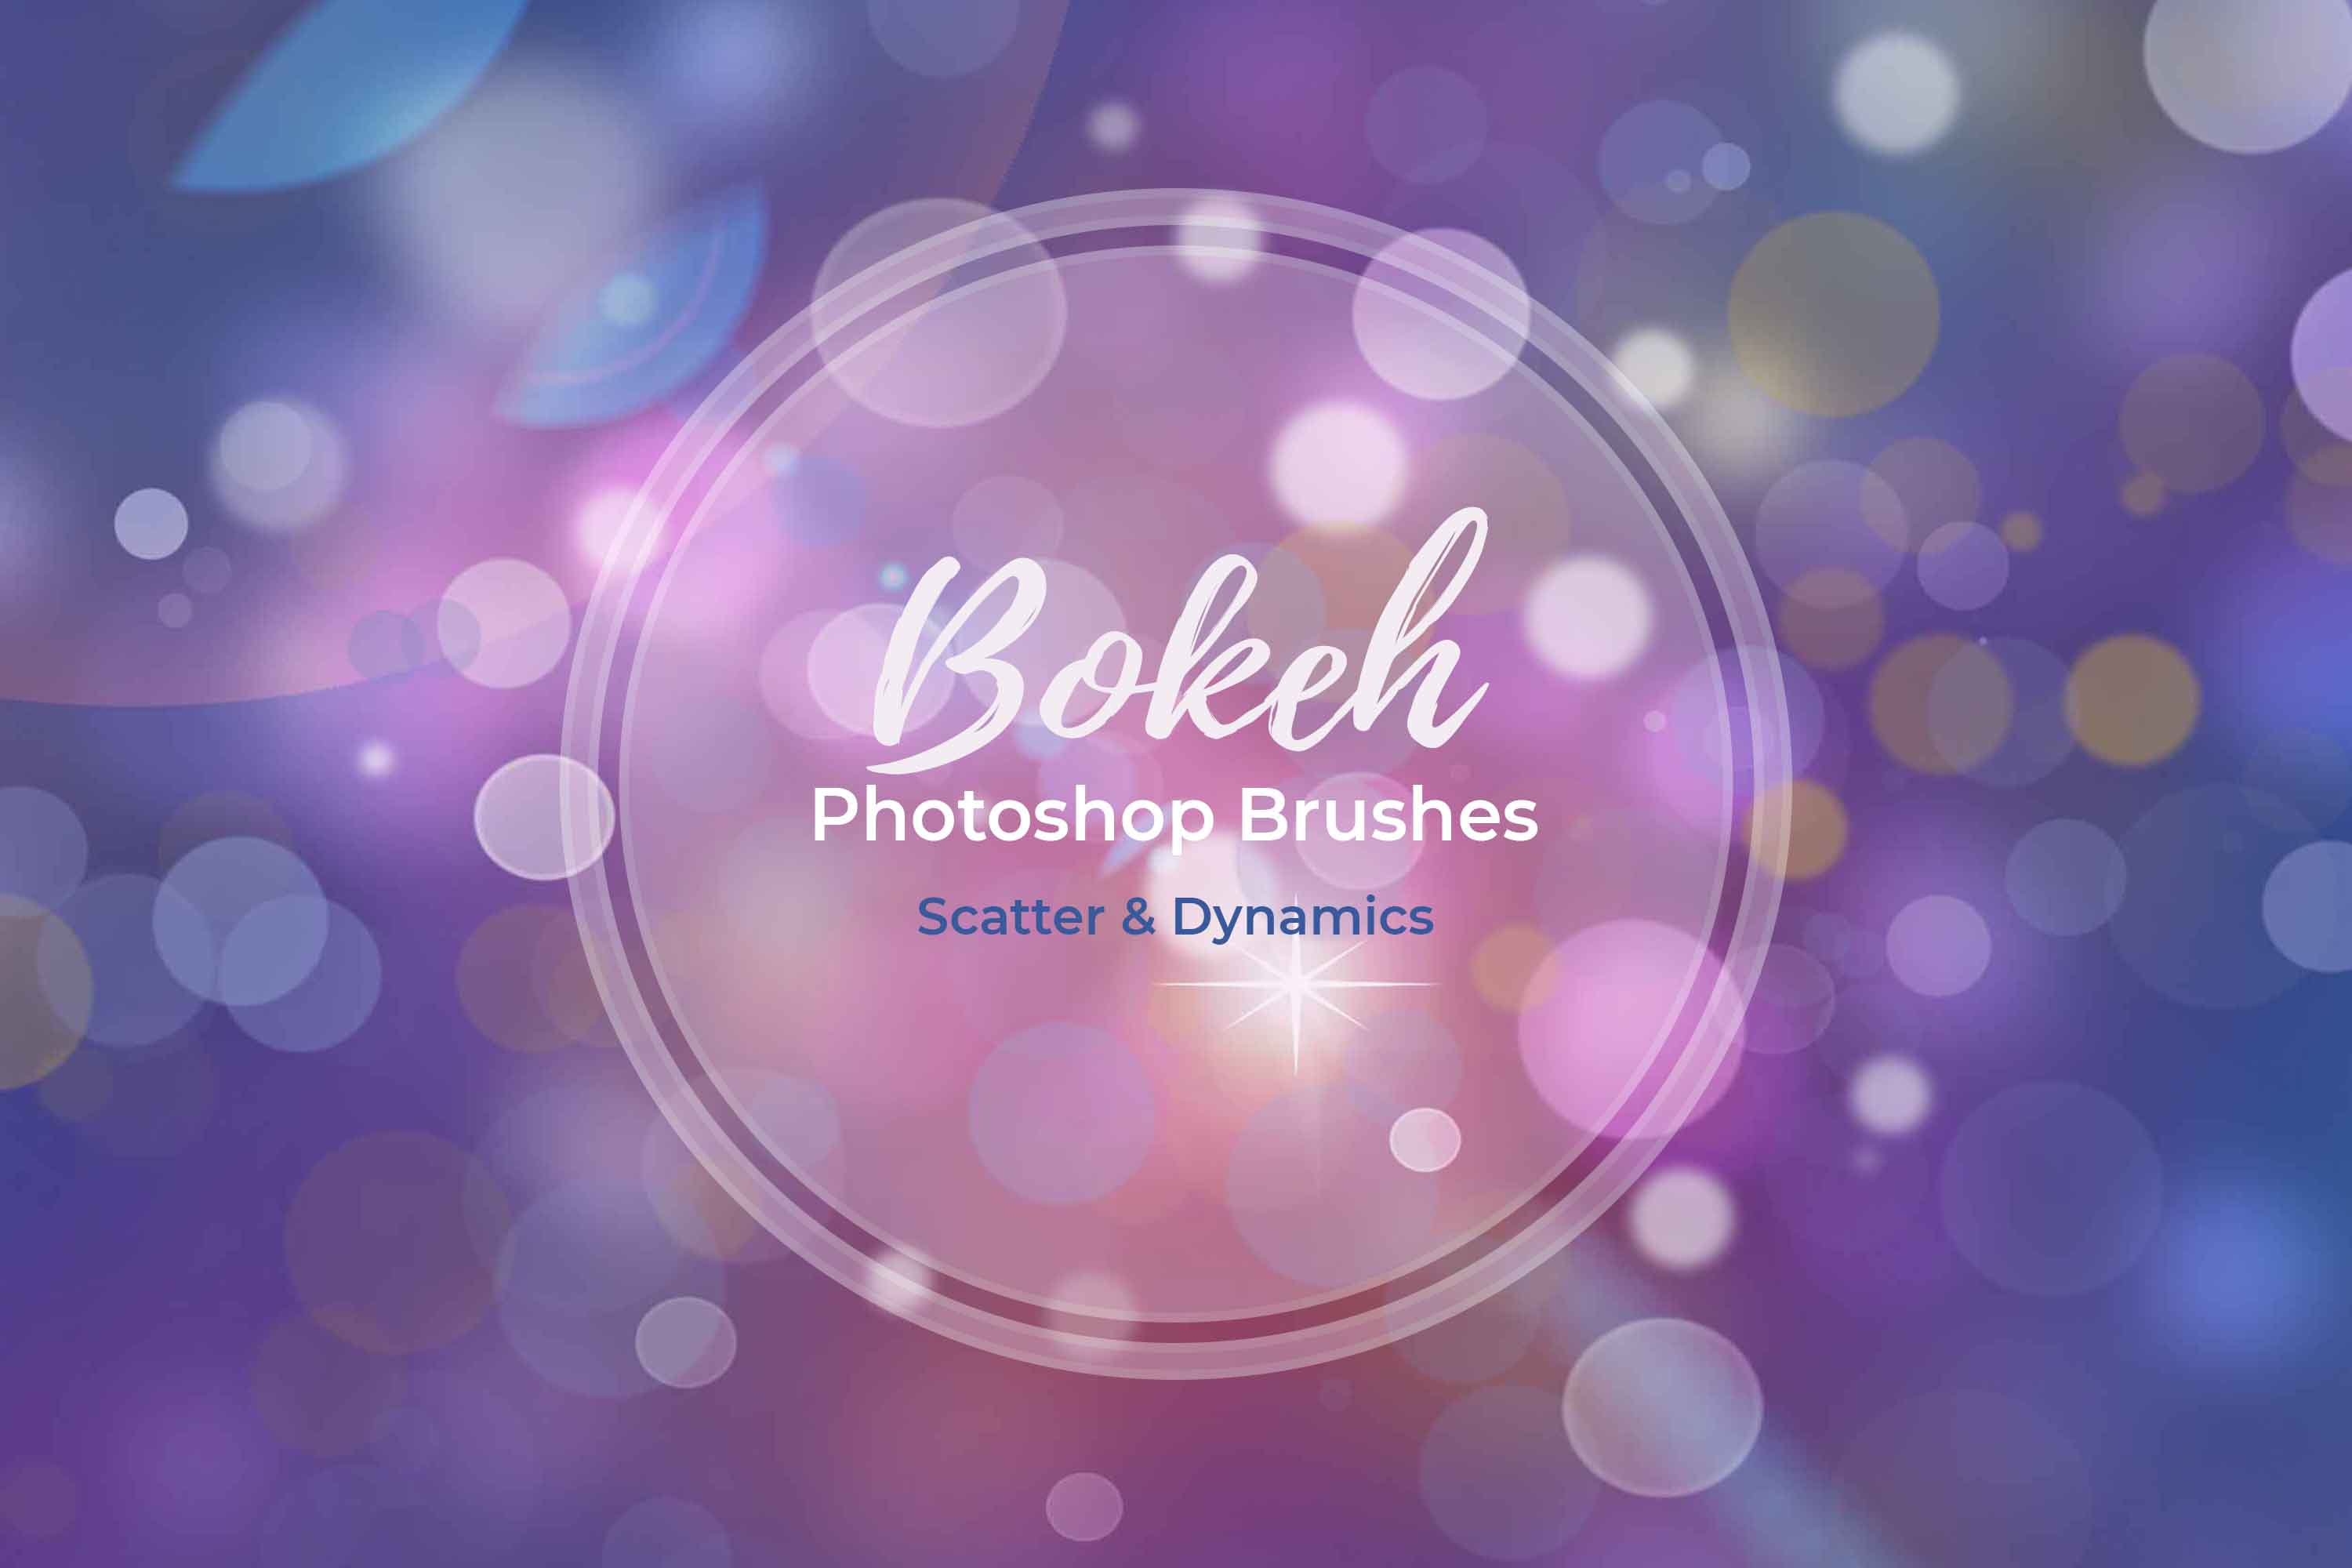 15 Bokeh Photoshop Brushes abr. - Scatter & Dynamics example image 5